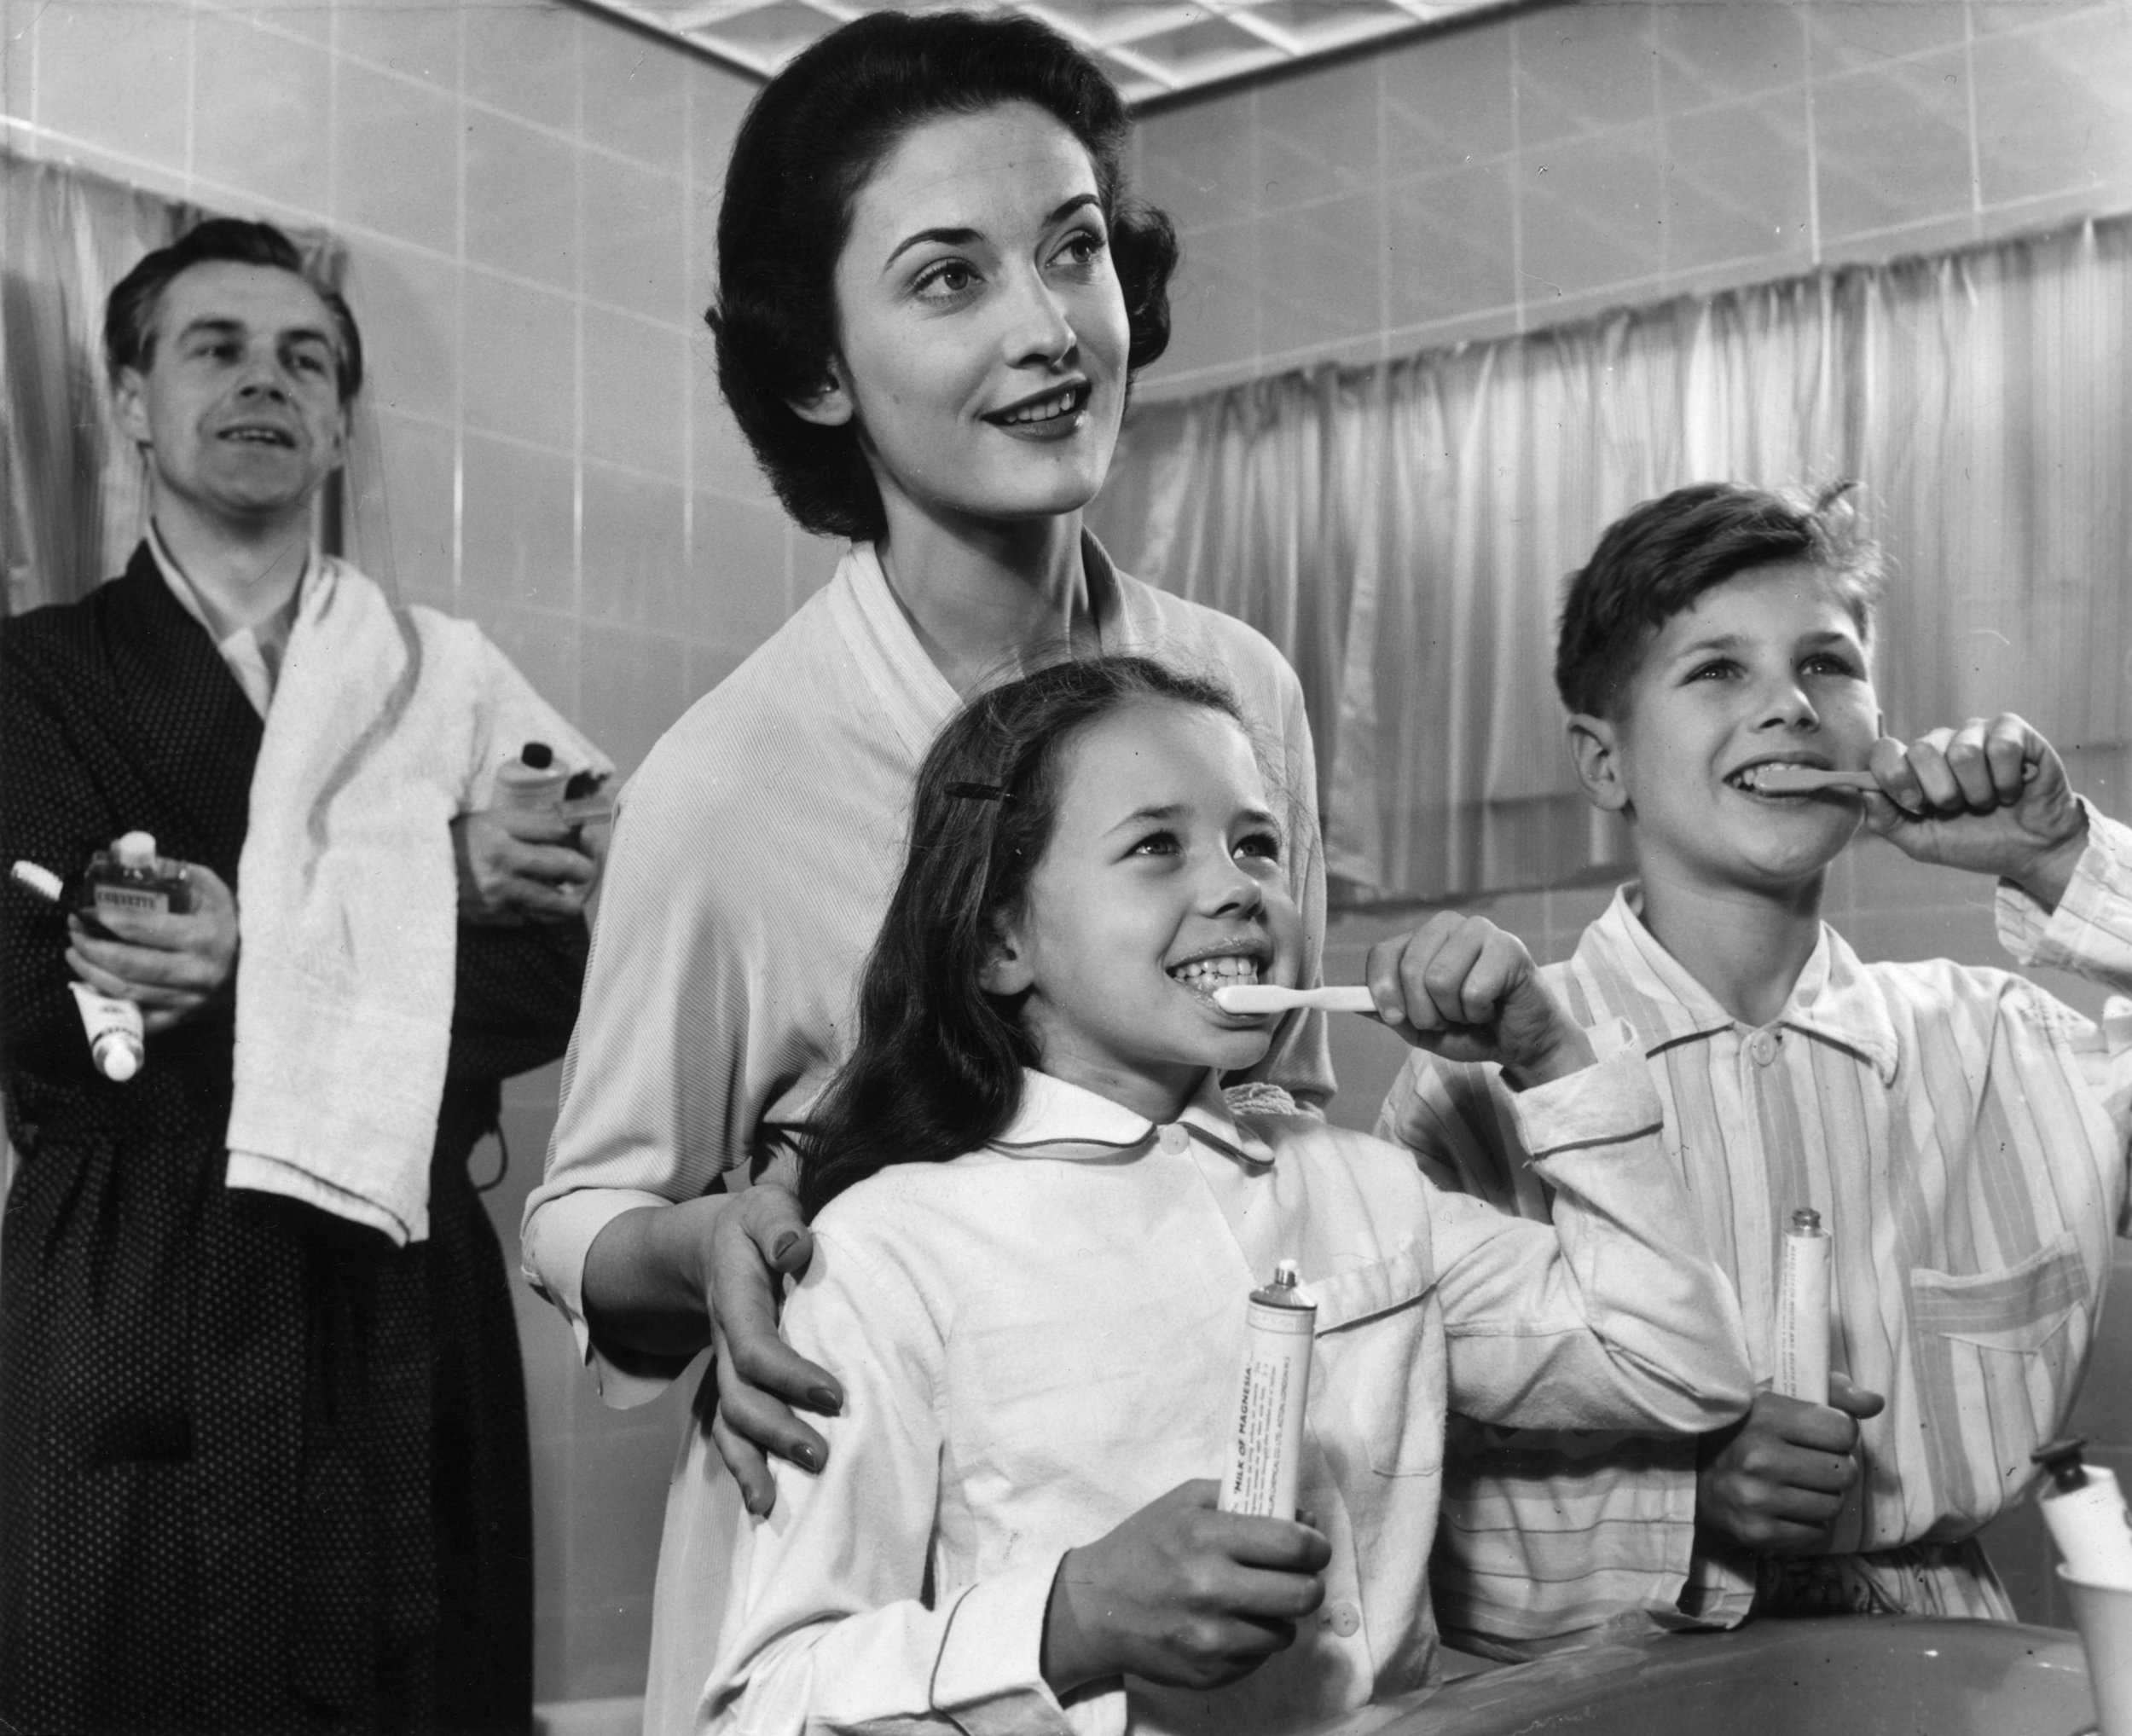 A family cleaning their teeth, circa 1955